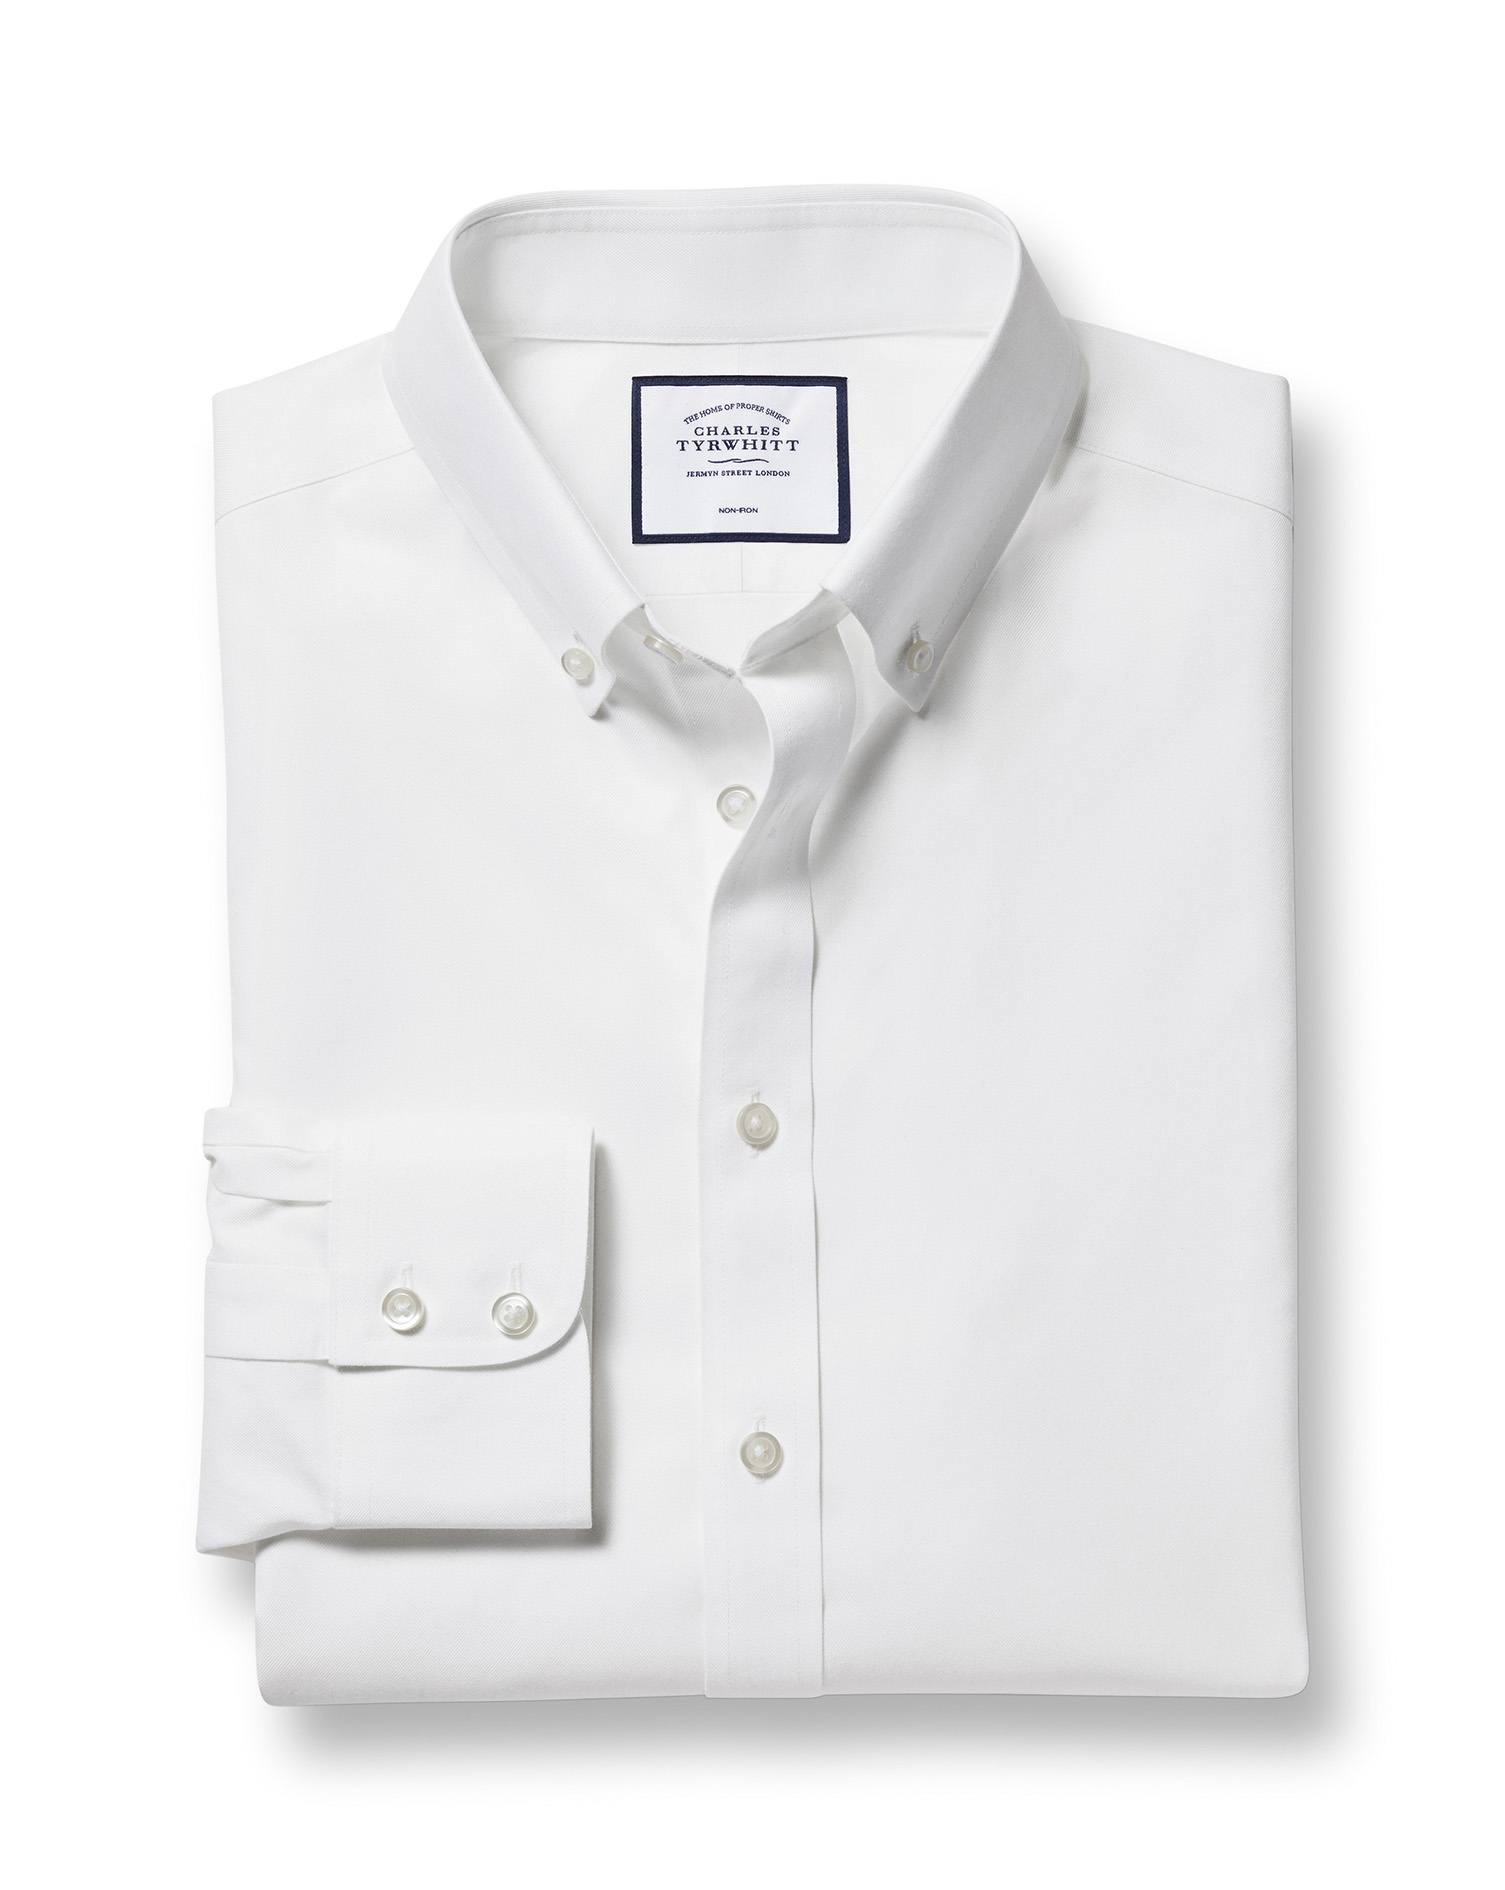 Slim Fit Button-Down Non-Iron Twill White Cotton Formal Shirt Single Cuff Size 15.5/36 by Charles Ty